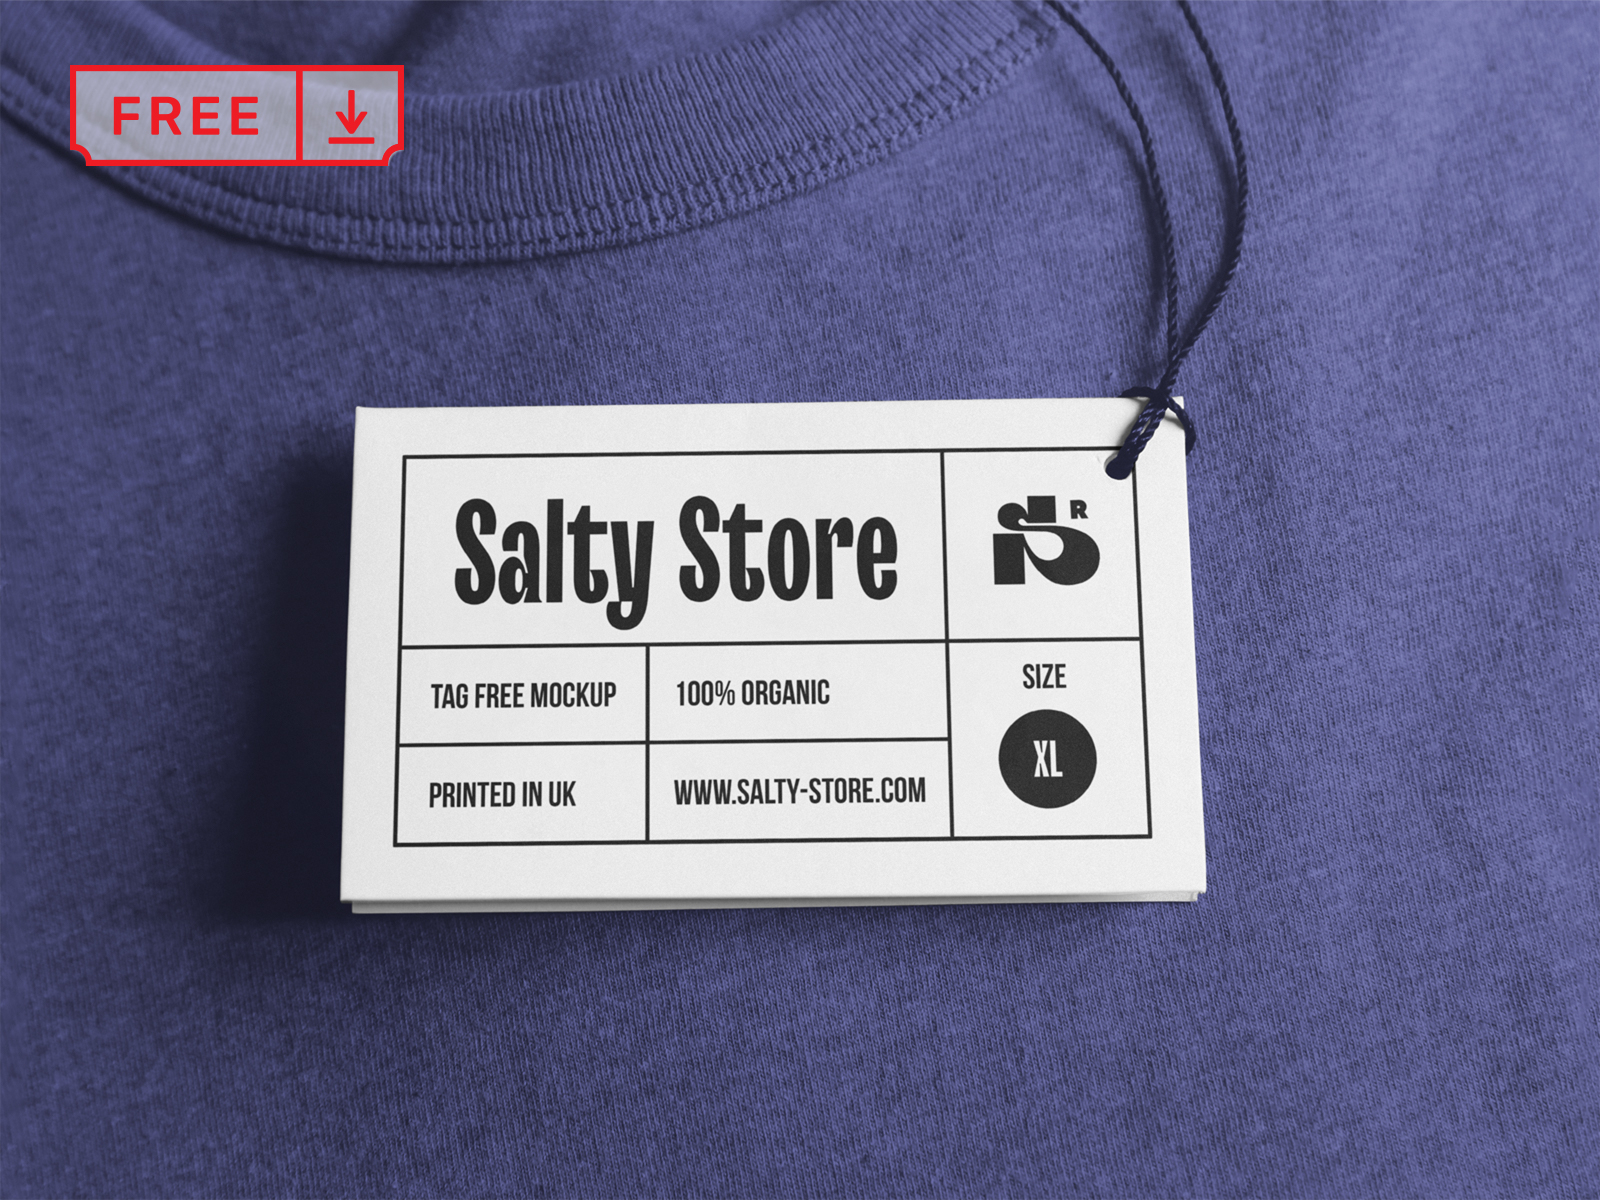 Free Clothing Tag Mockup